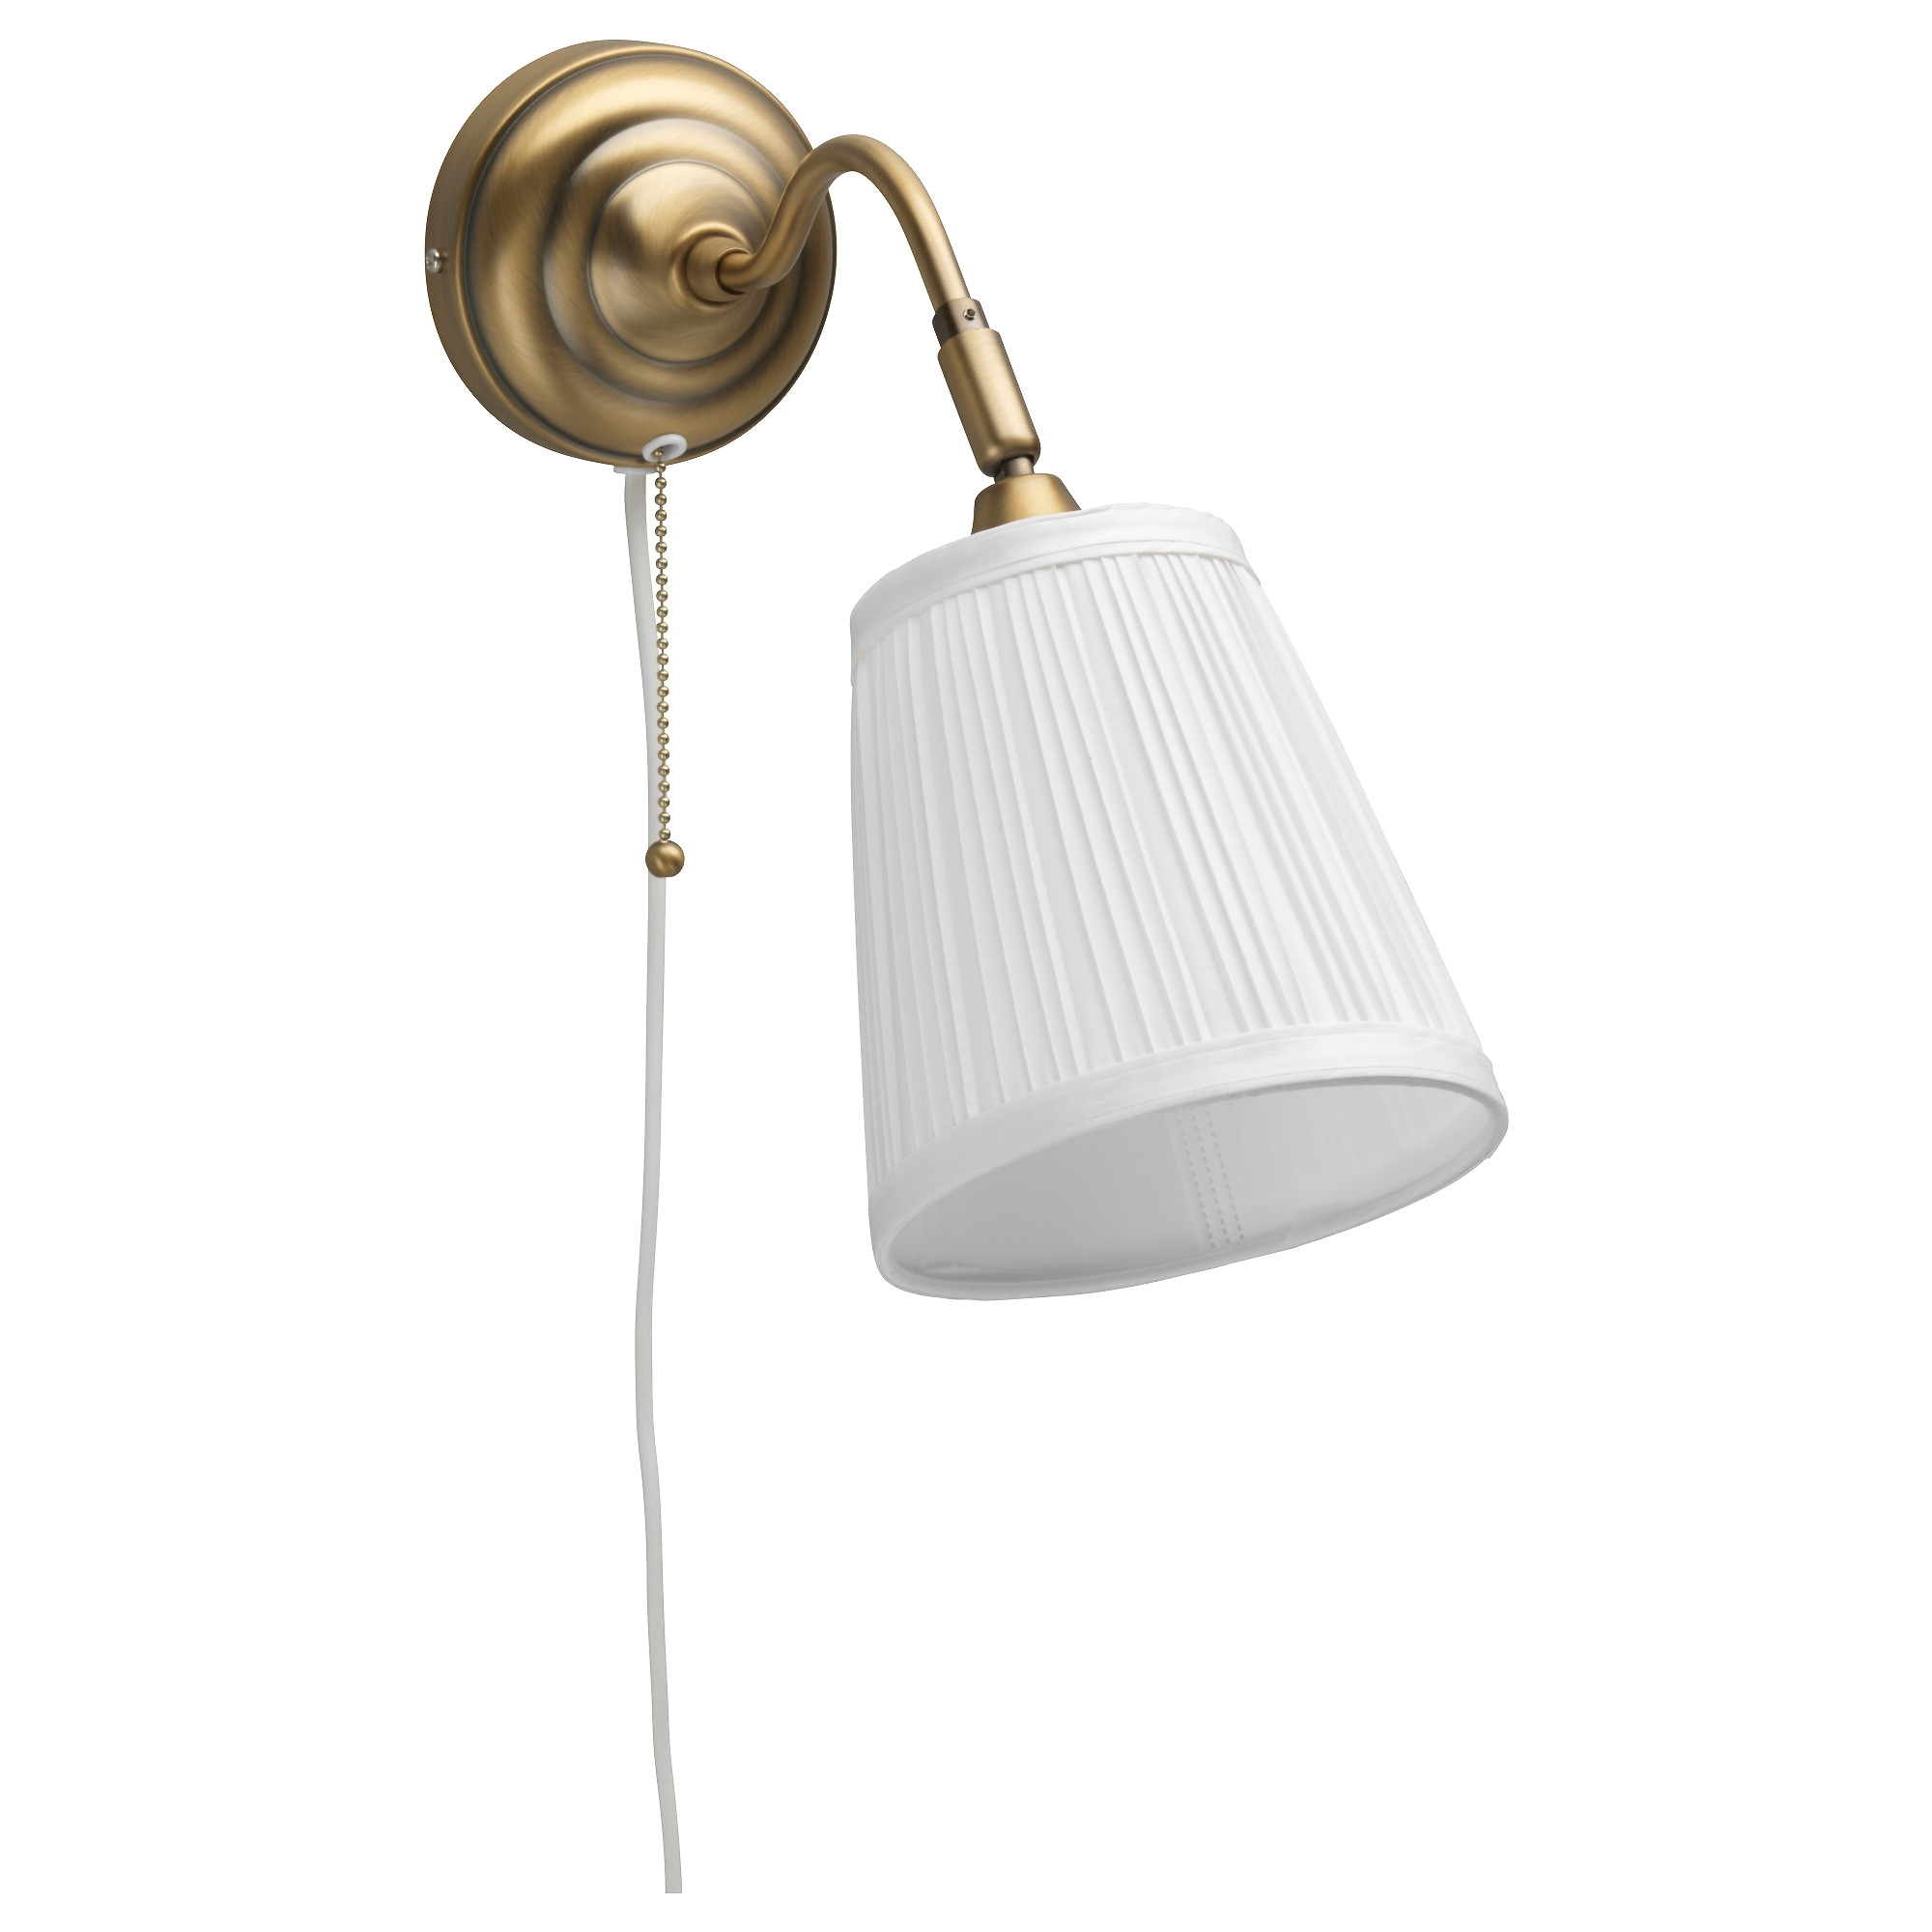 Fashionable Wall Lights And Uplighters (View 7 of 20)